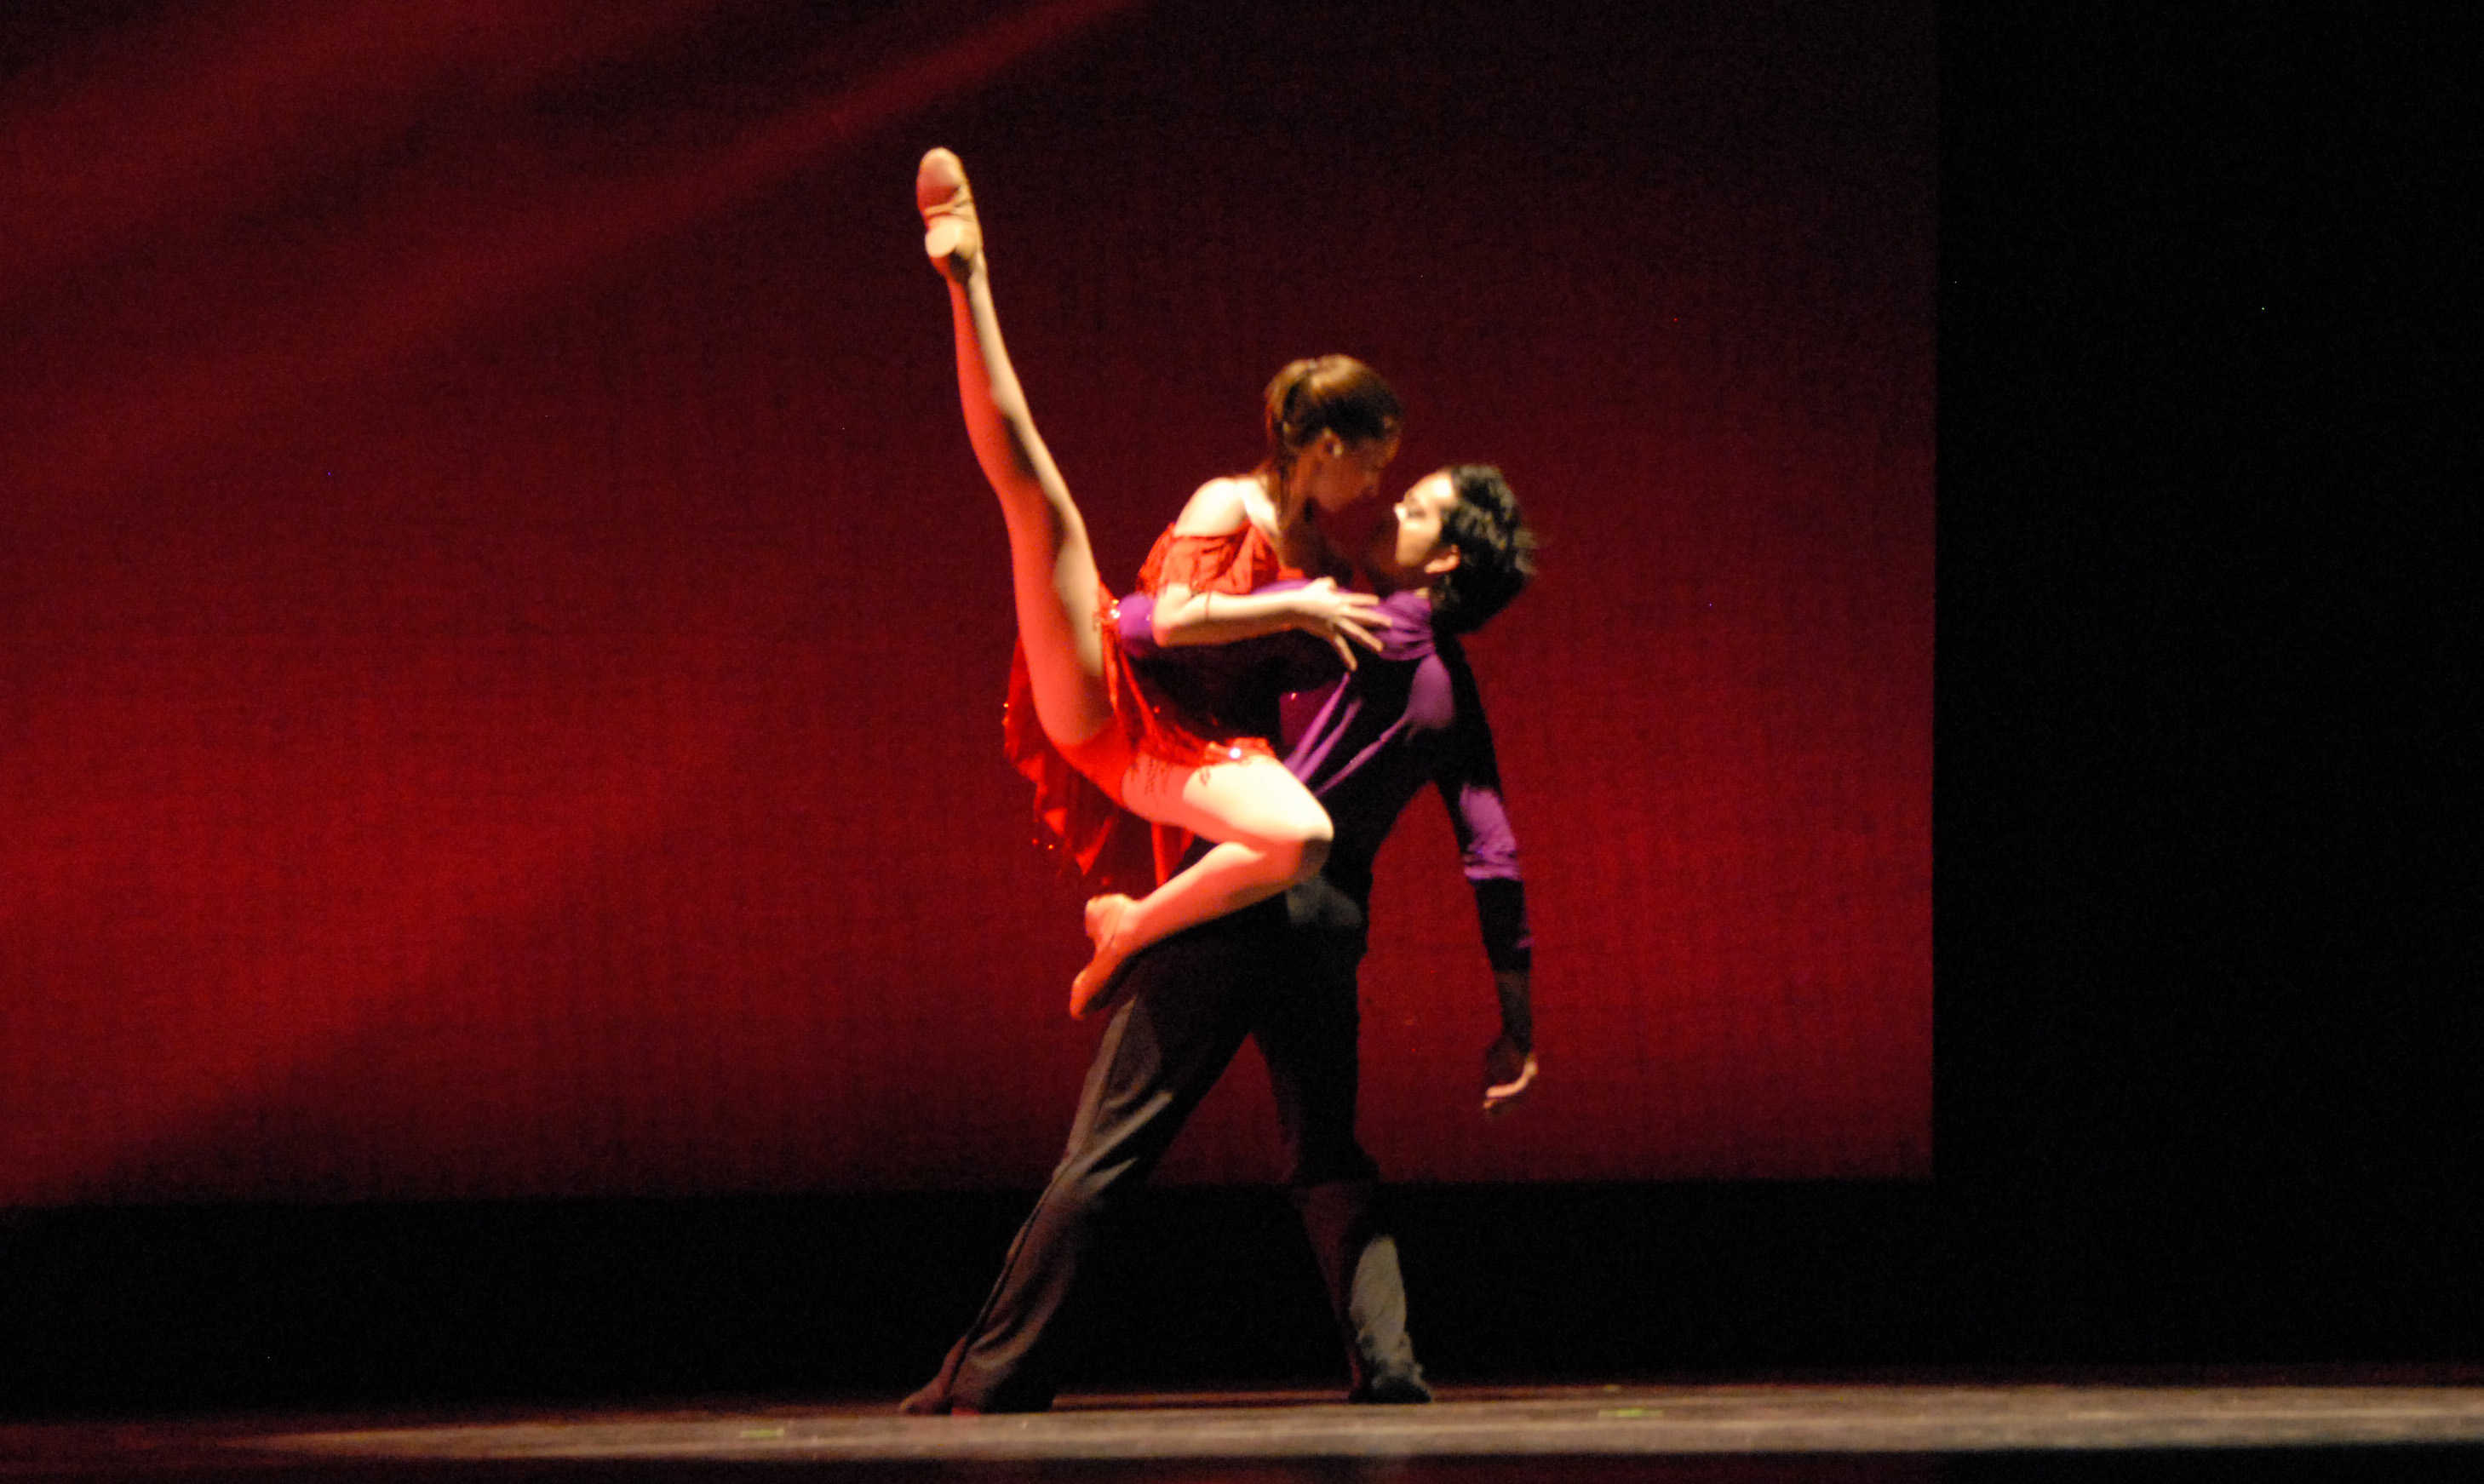 Two dancers tango on stage